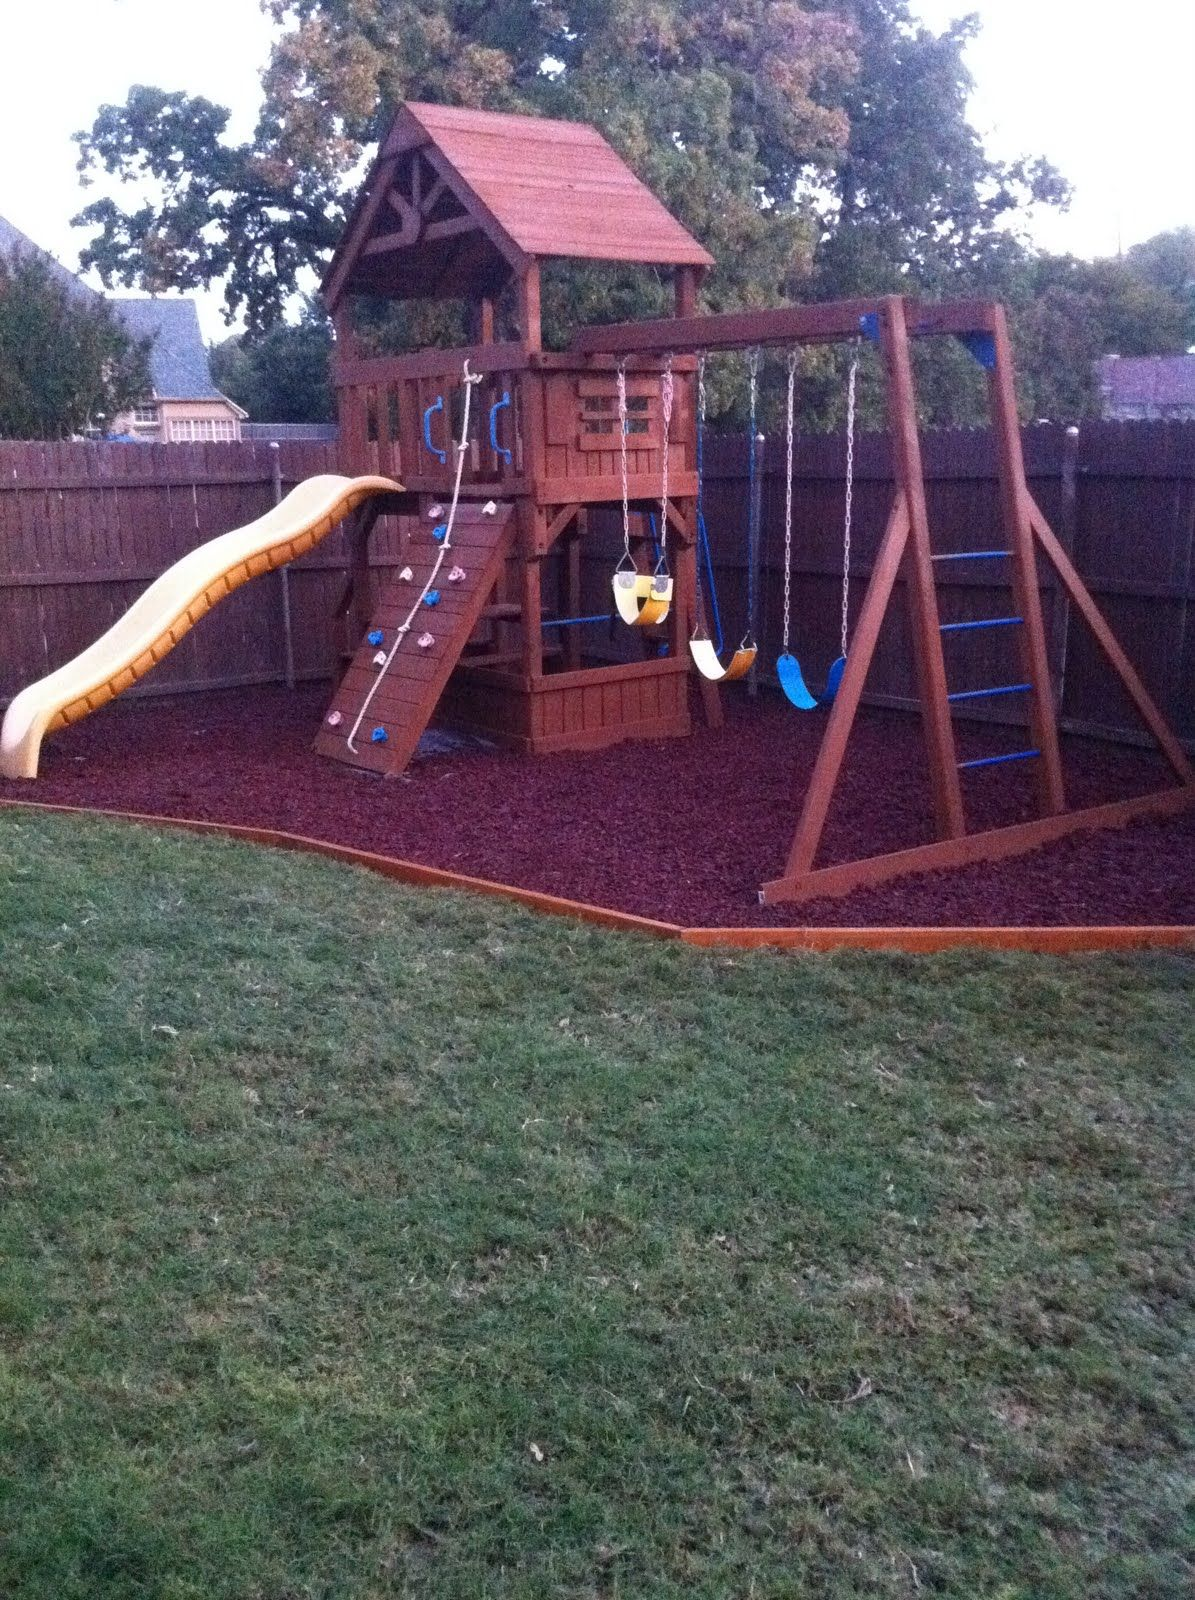 photos of playgrounds in back yard landscape lighting photo